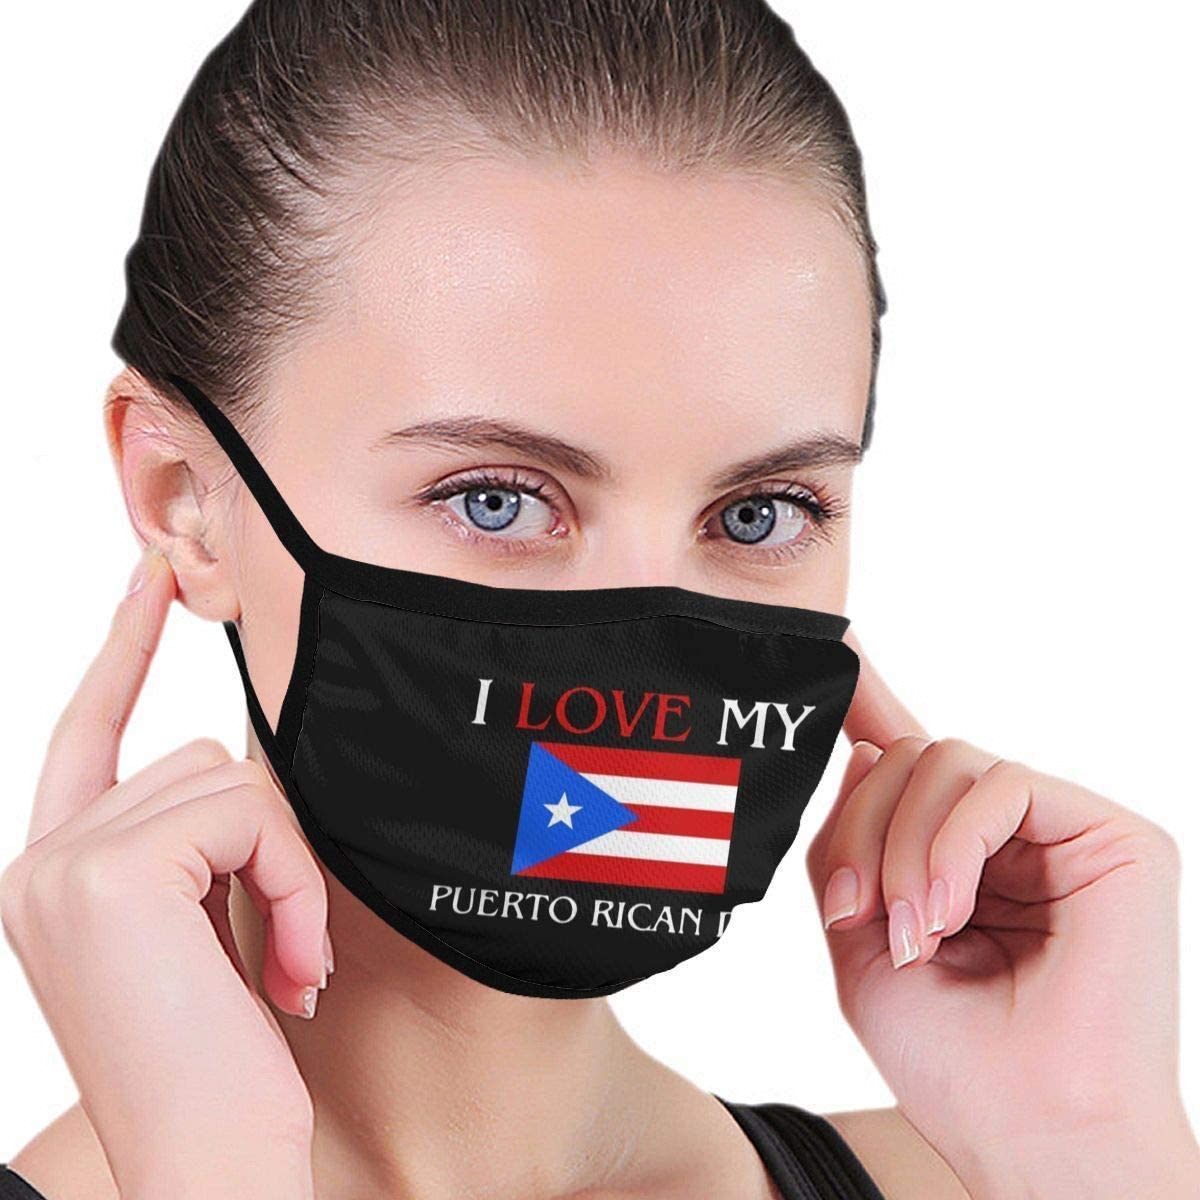 BOKUTT Dust and odor mask I Love My Puerto Rican Dad Adult Kids Reusable Graphics Fashion Washable Nose Wear For ing-Washable and reusable